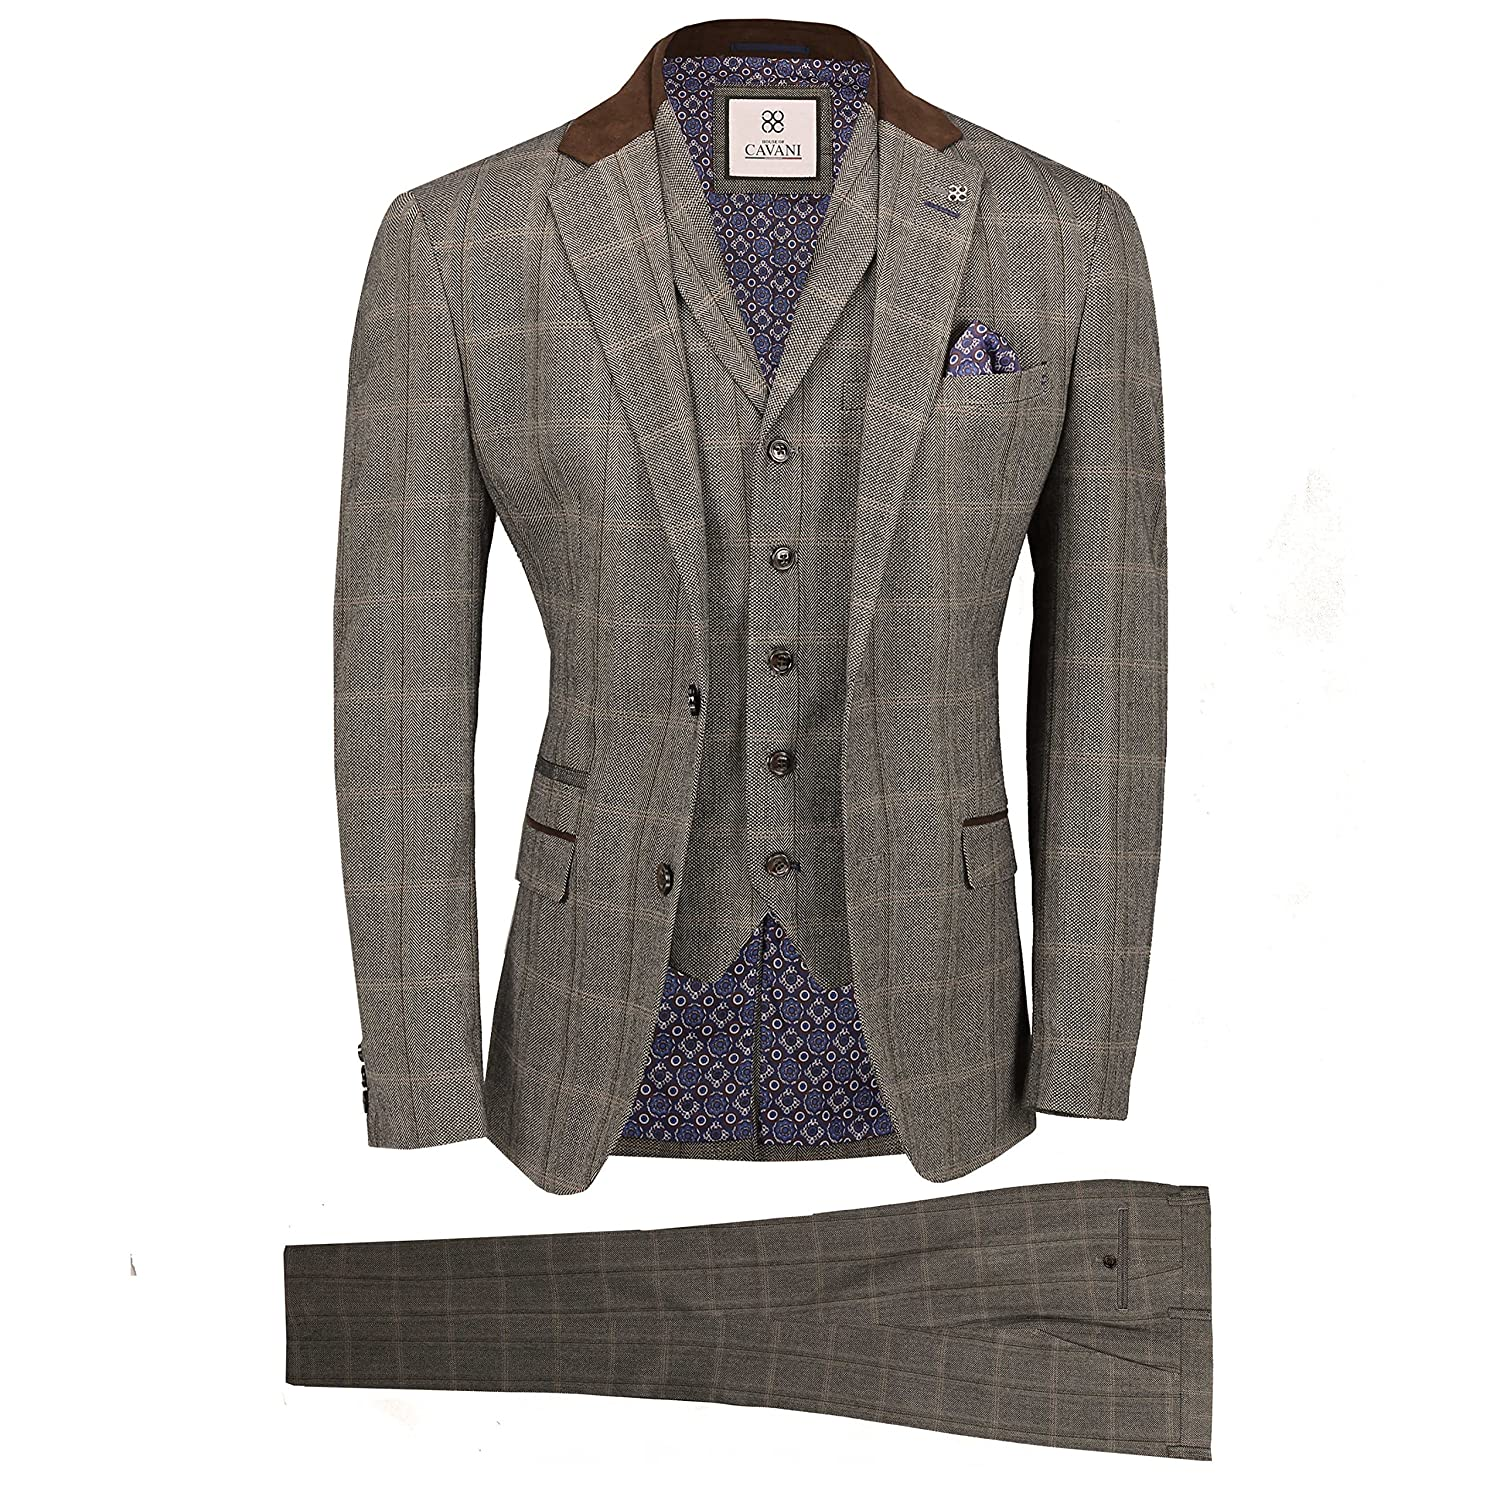 Cavani Mens Tweed Check 3 Piece Suit in Brown Blue Retro Vintage Herringbone Smart Tailored Fit